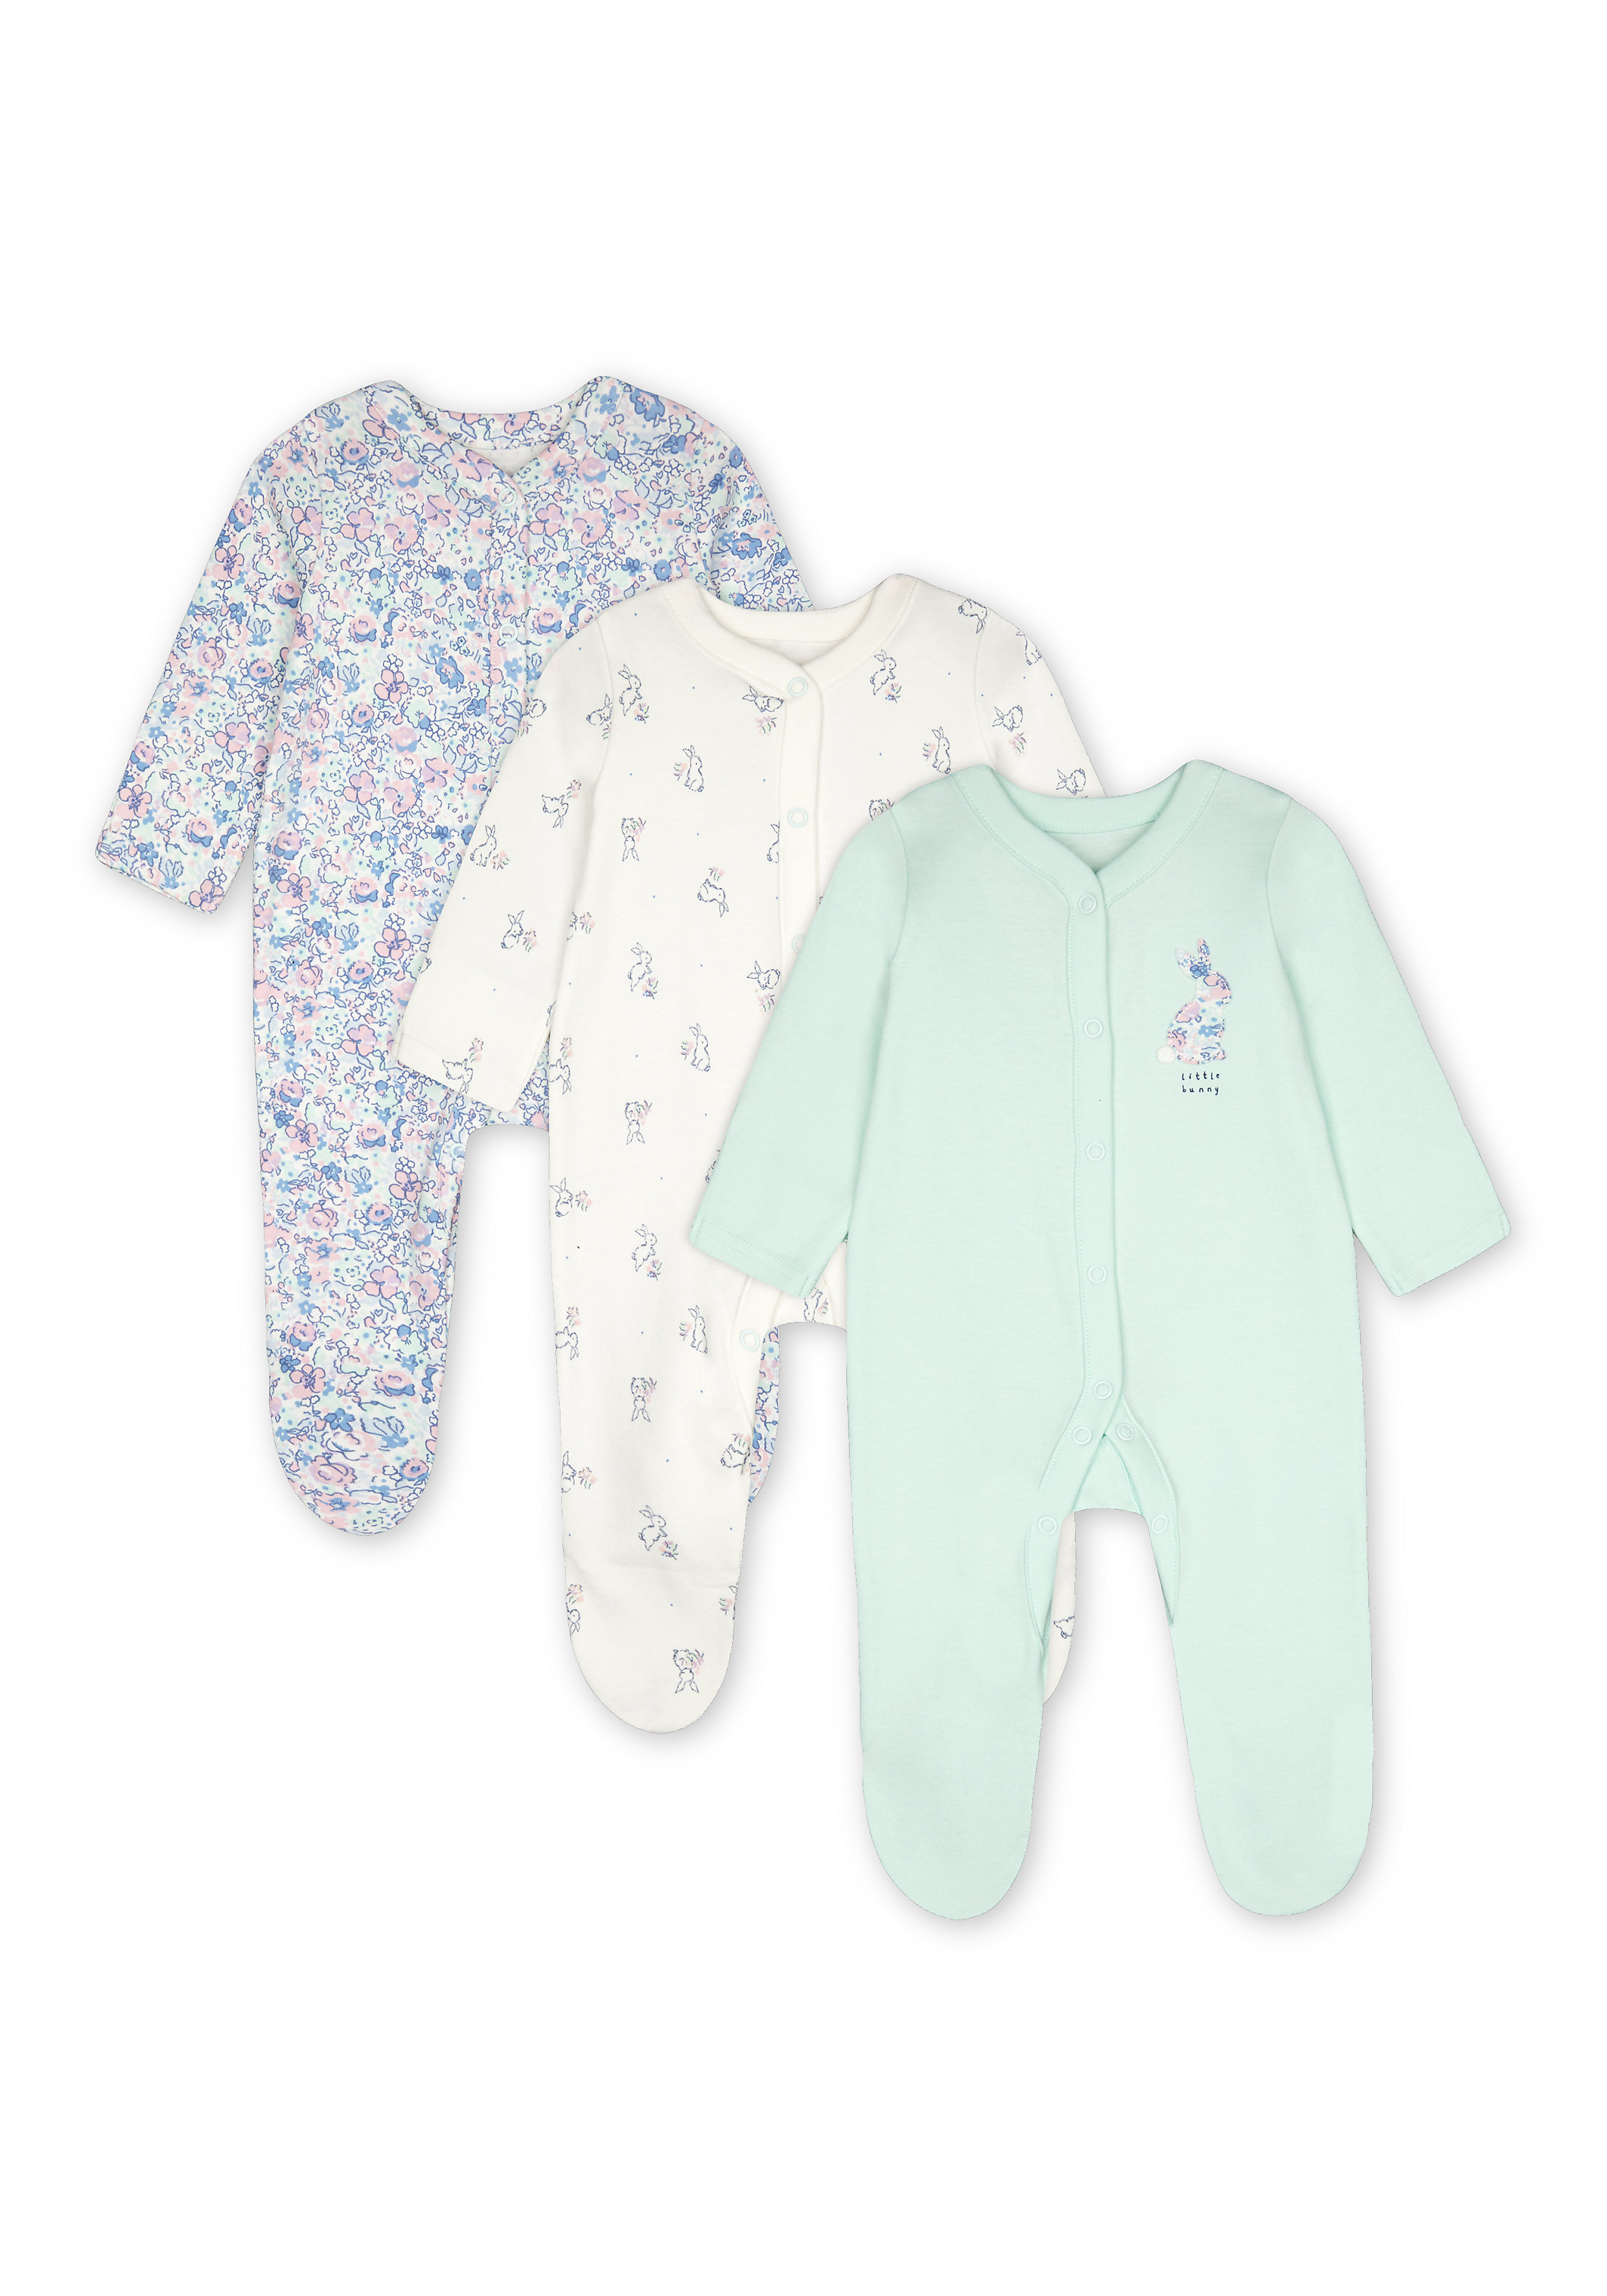 Mothercare | Girls Full Sleeves Sleepsuit Bunny And Floral Print - Pack Of 3 - Blue